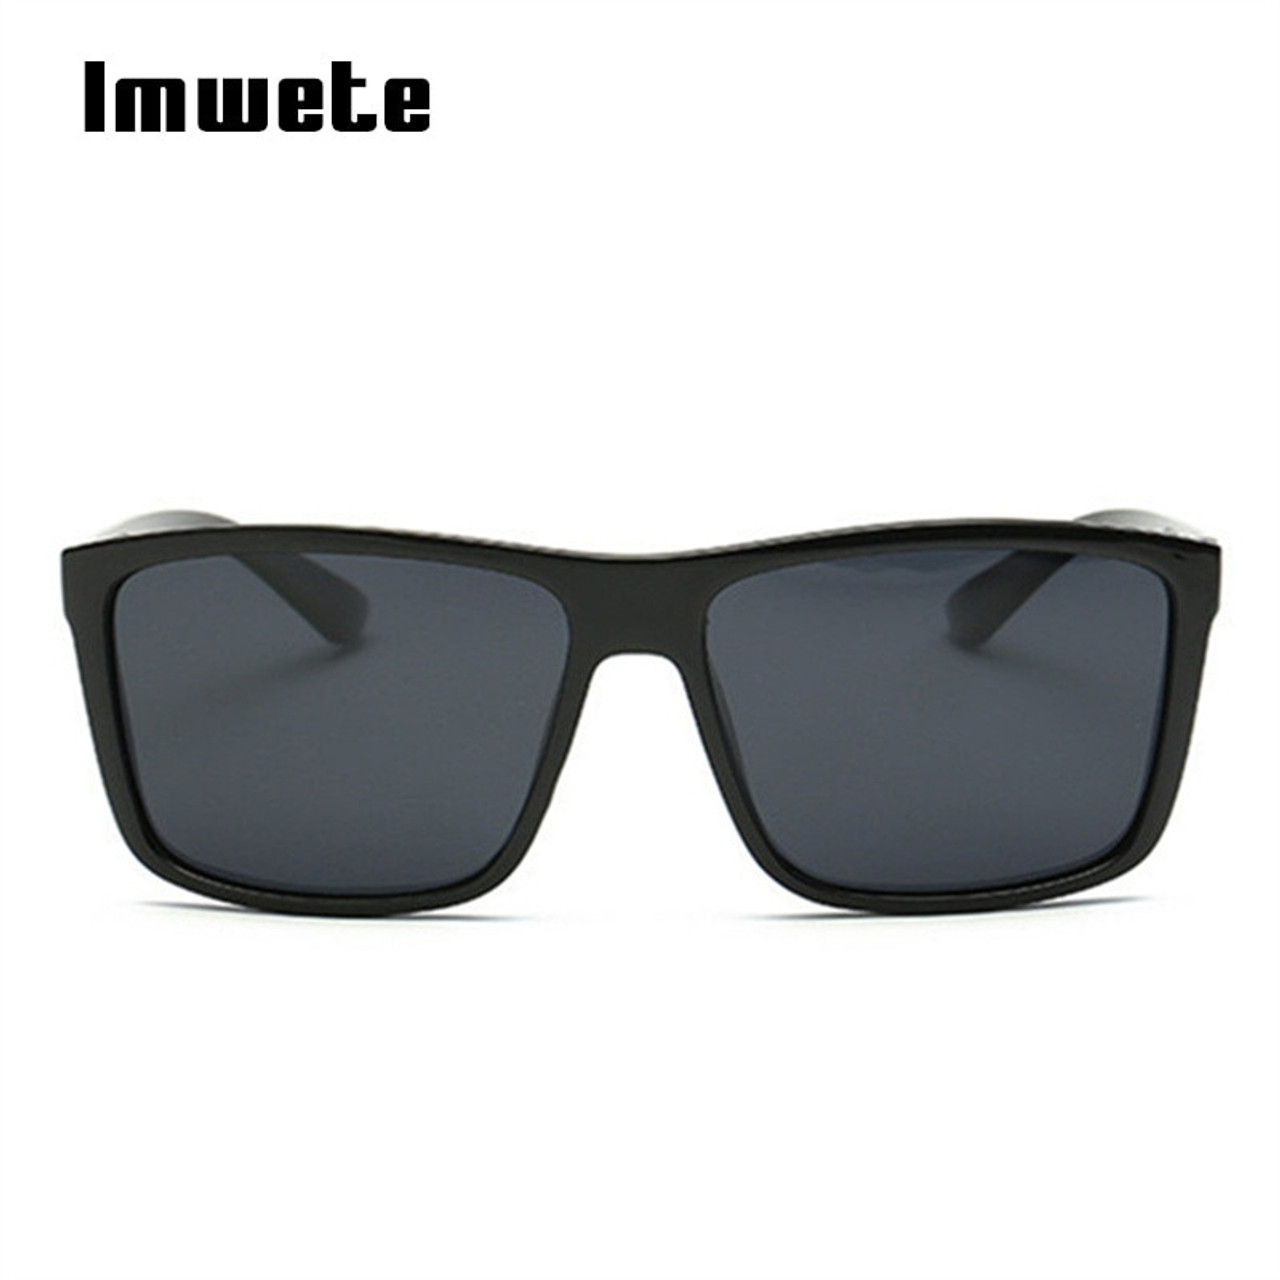 DESIGNER CLASSIC POLARIZED SUNGLASSES BLACK LARGE RETRO VINTAGE UV MENS LADIES